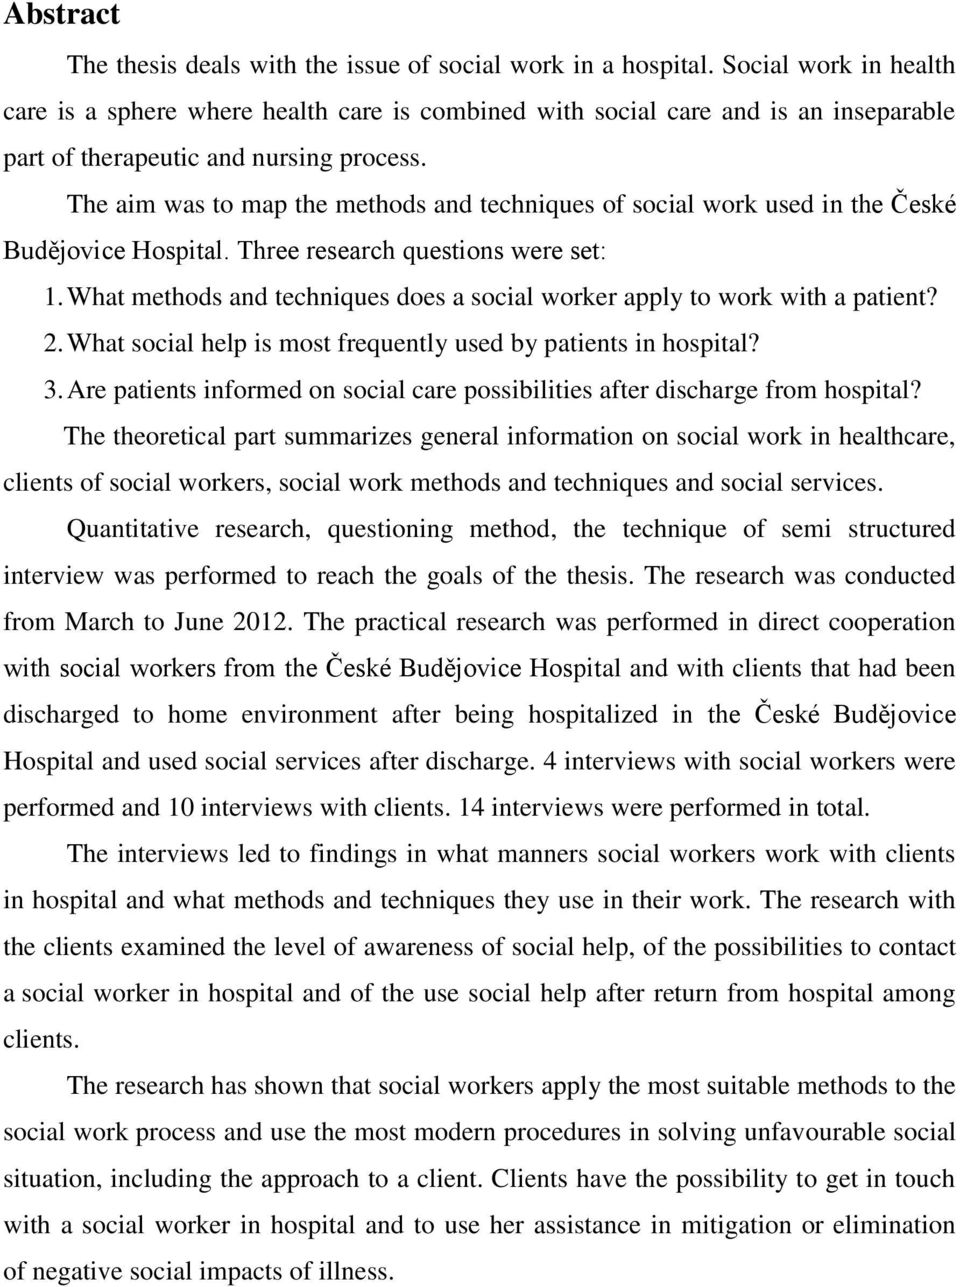 The aim was to map the methods and techniques of social work used in the České Budějovice Hospital. Three research questions were set: 1.